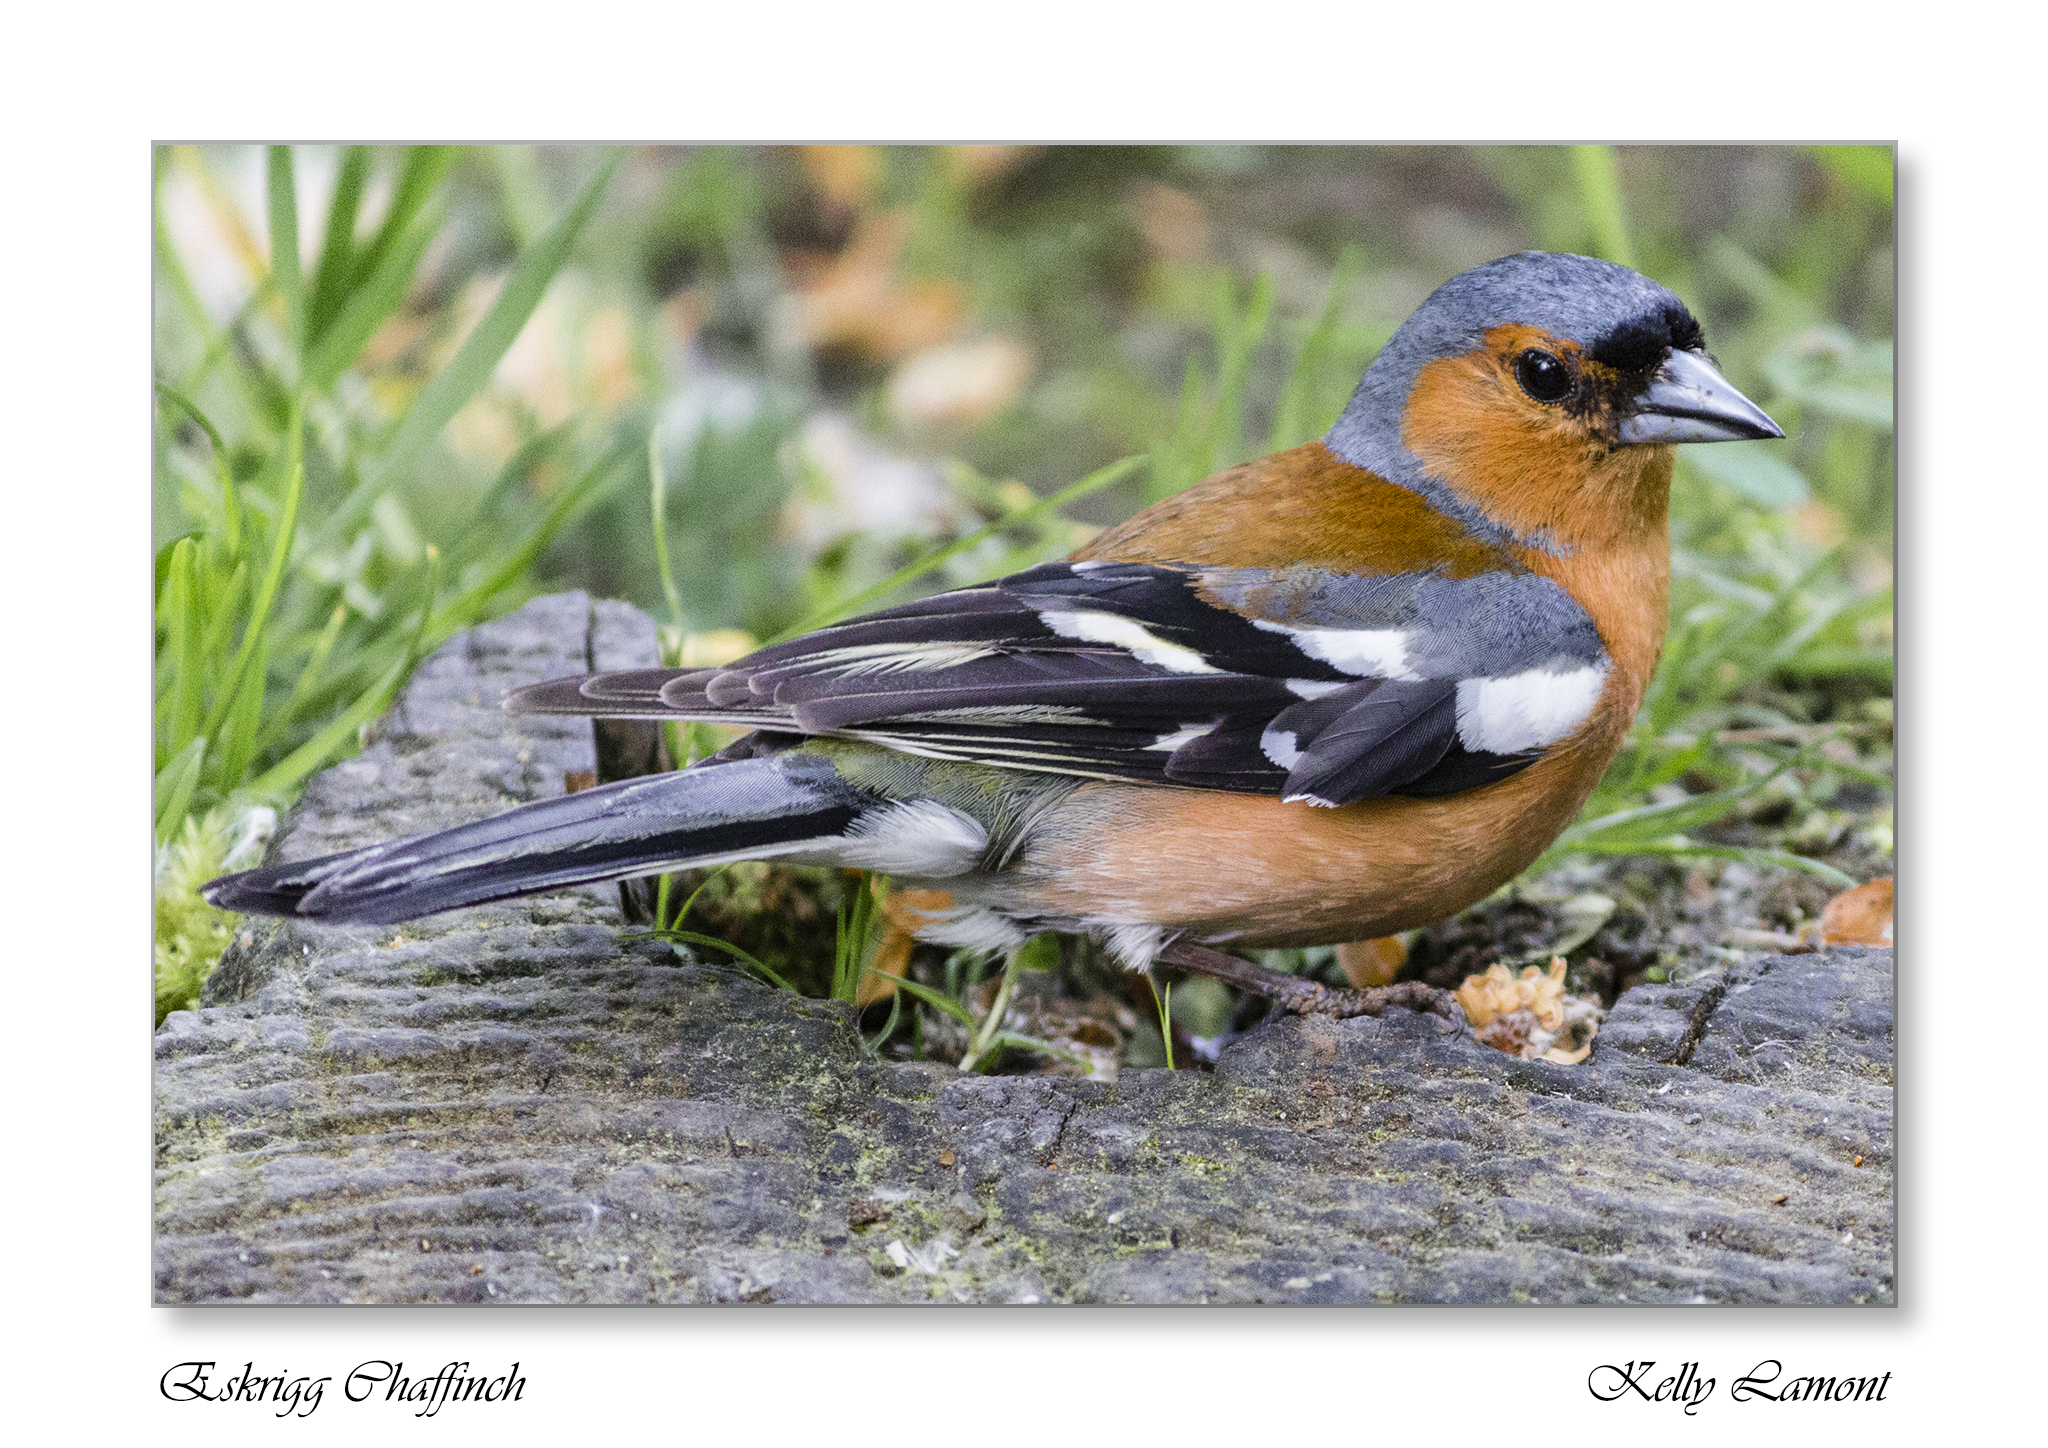 Kelly - Eskrigg Chaffinch Small